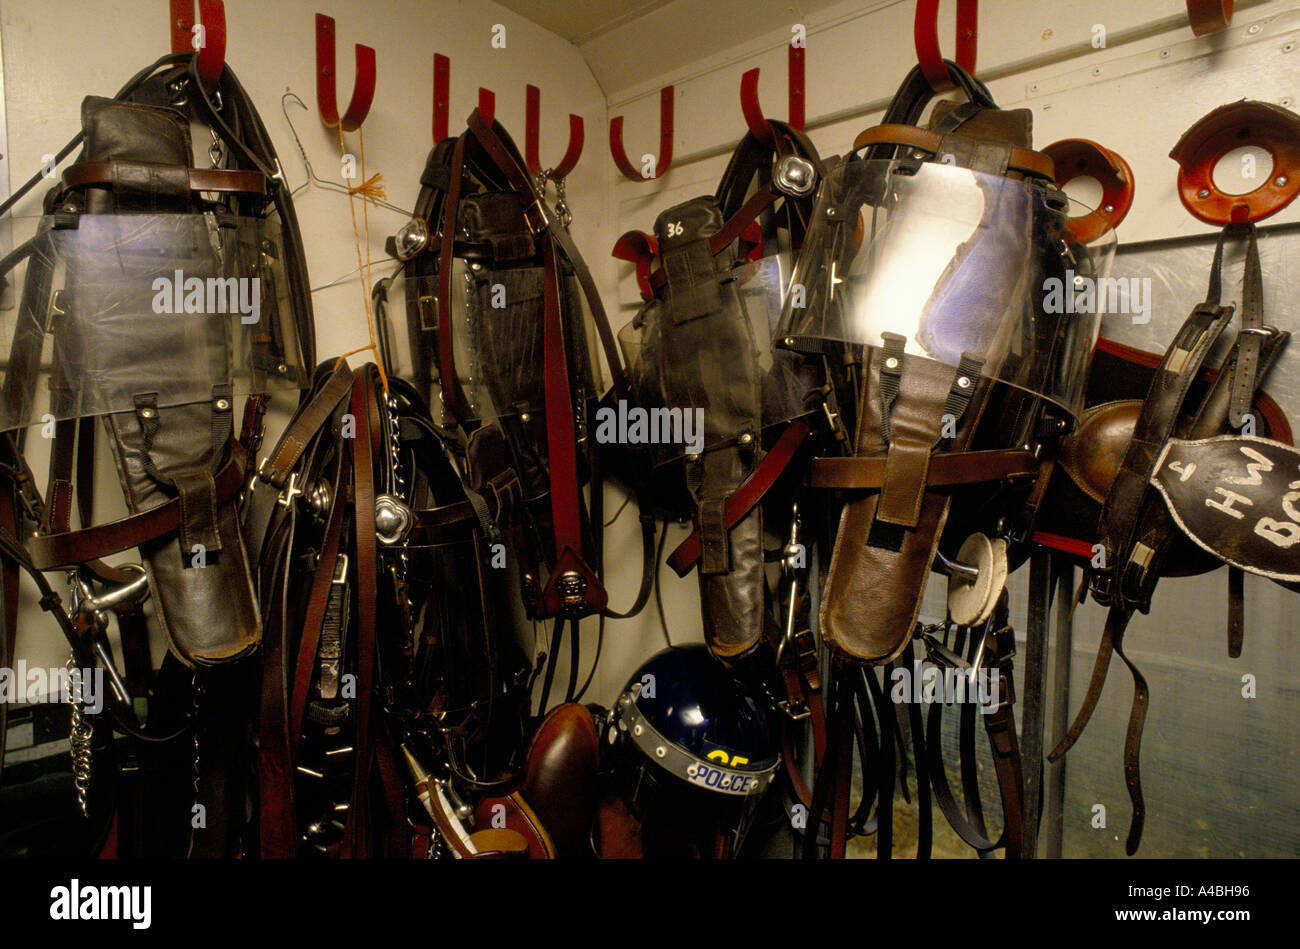 Police Horses Training Police And Horse Riot Protection Gear Stock Photo Alamy